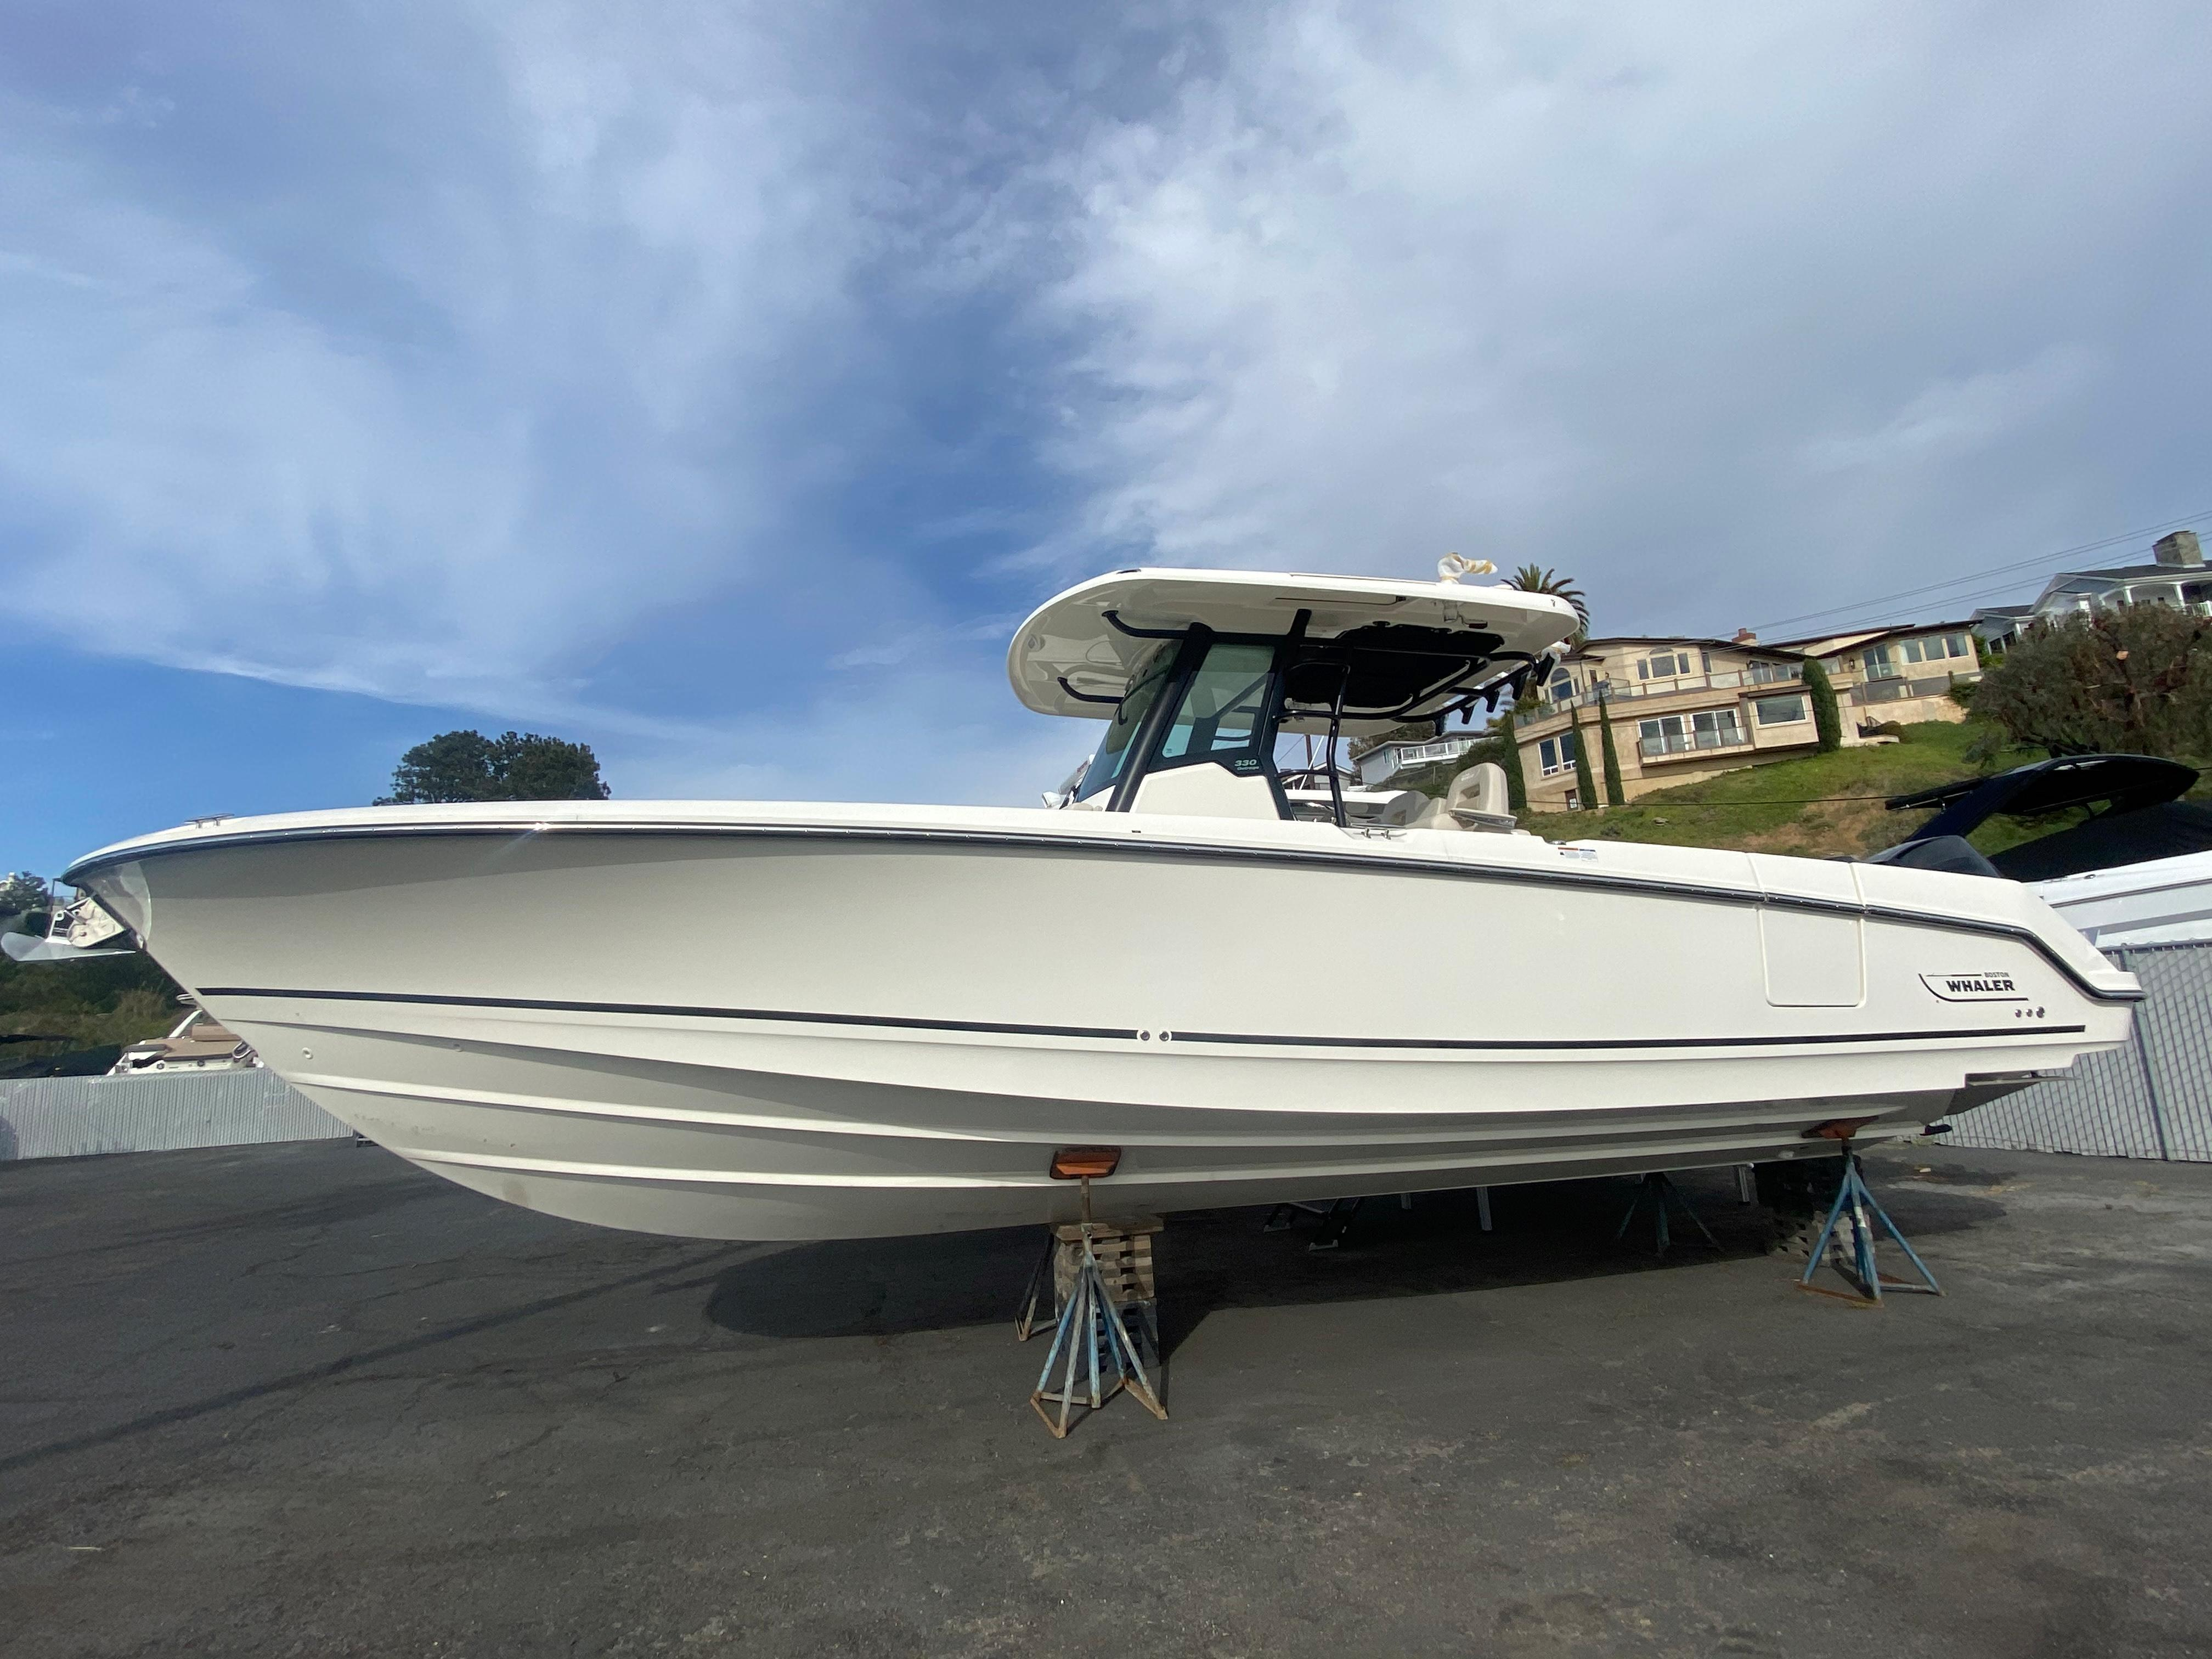 2021 Boston Whaler 330 Outrage #BW1736A inventory image at Sun Country Coastal in Newport Beach